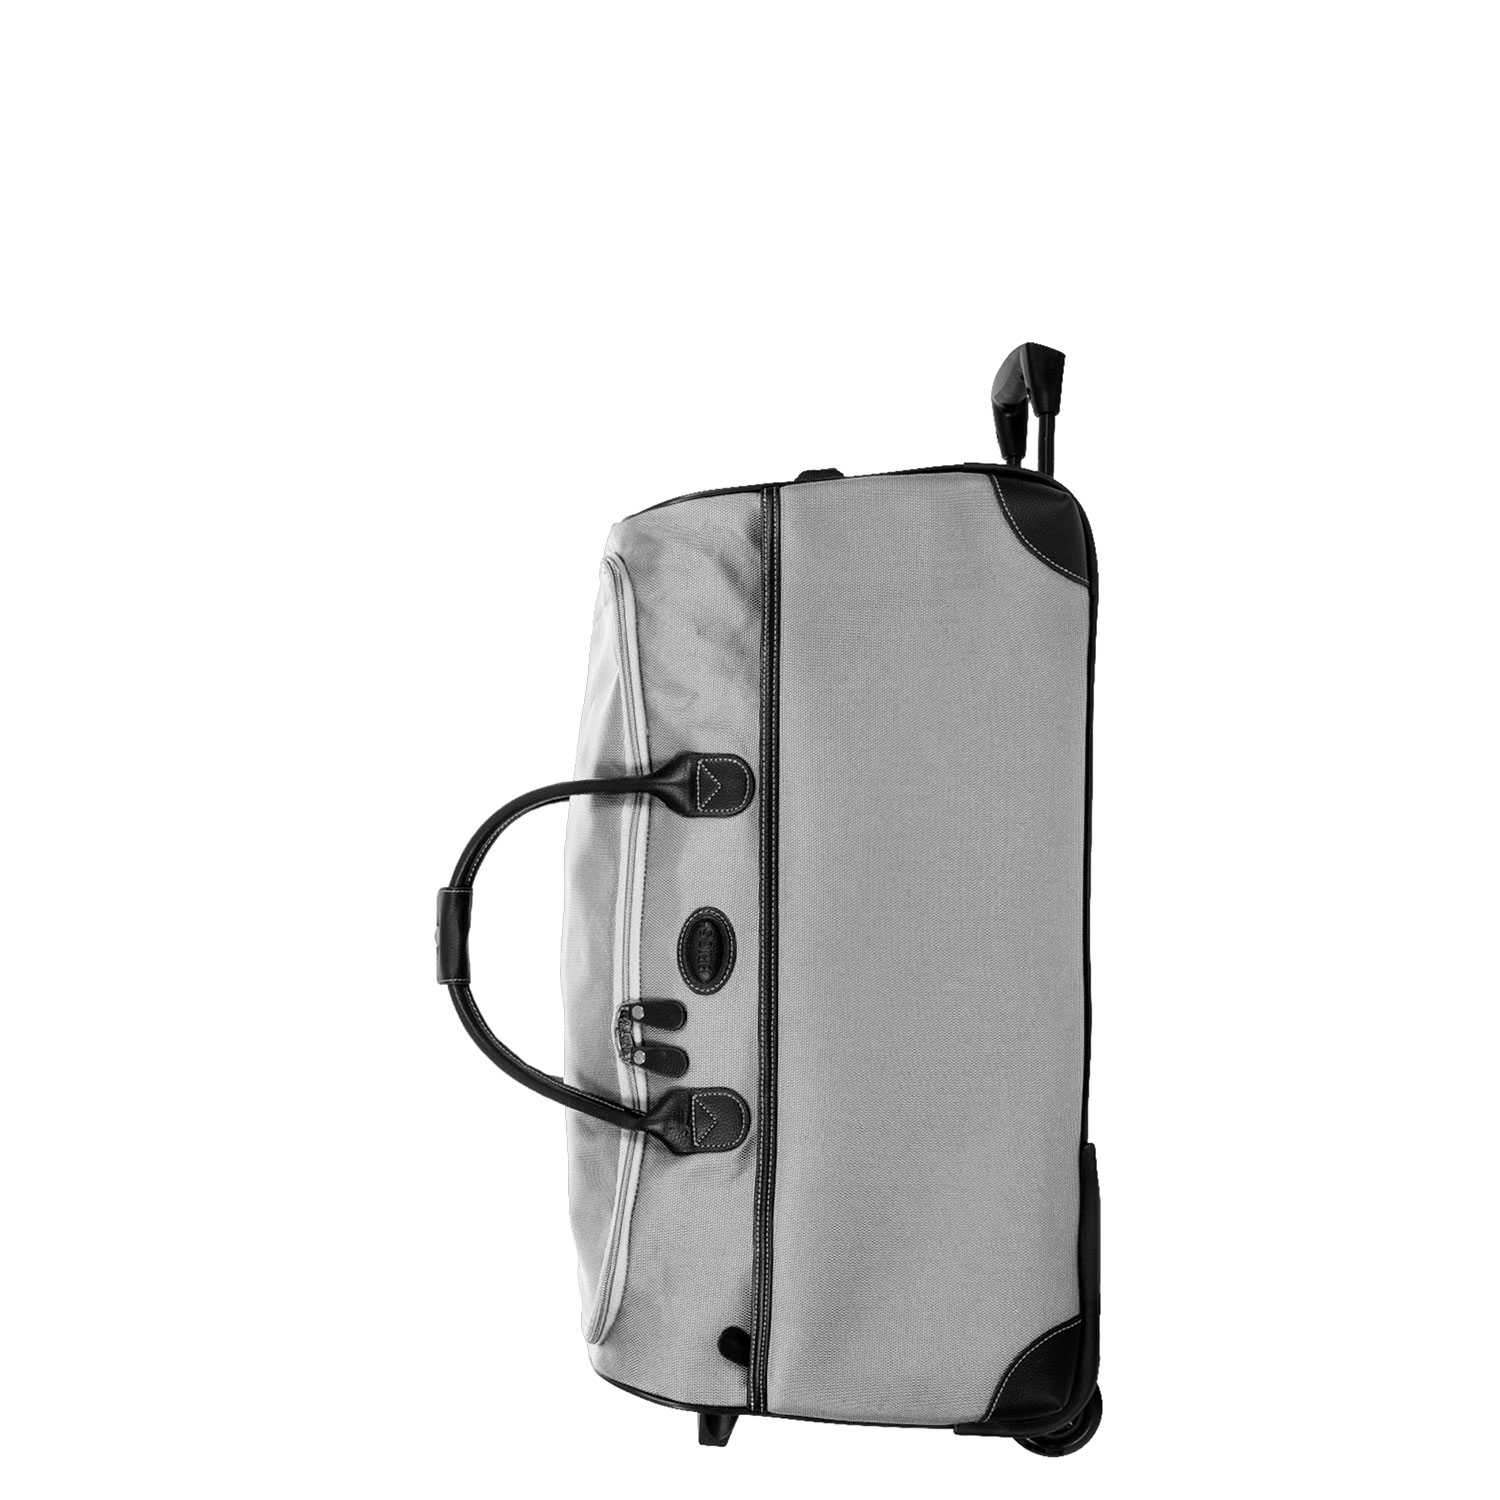 Pronto rolling duffle silver 21.jpg stand